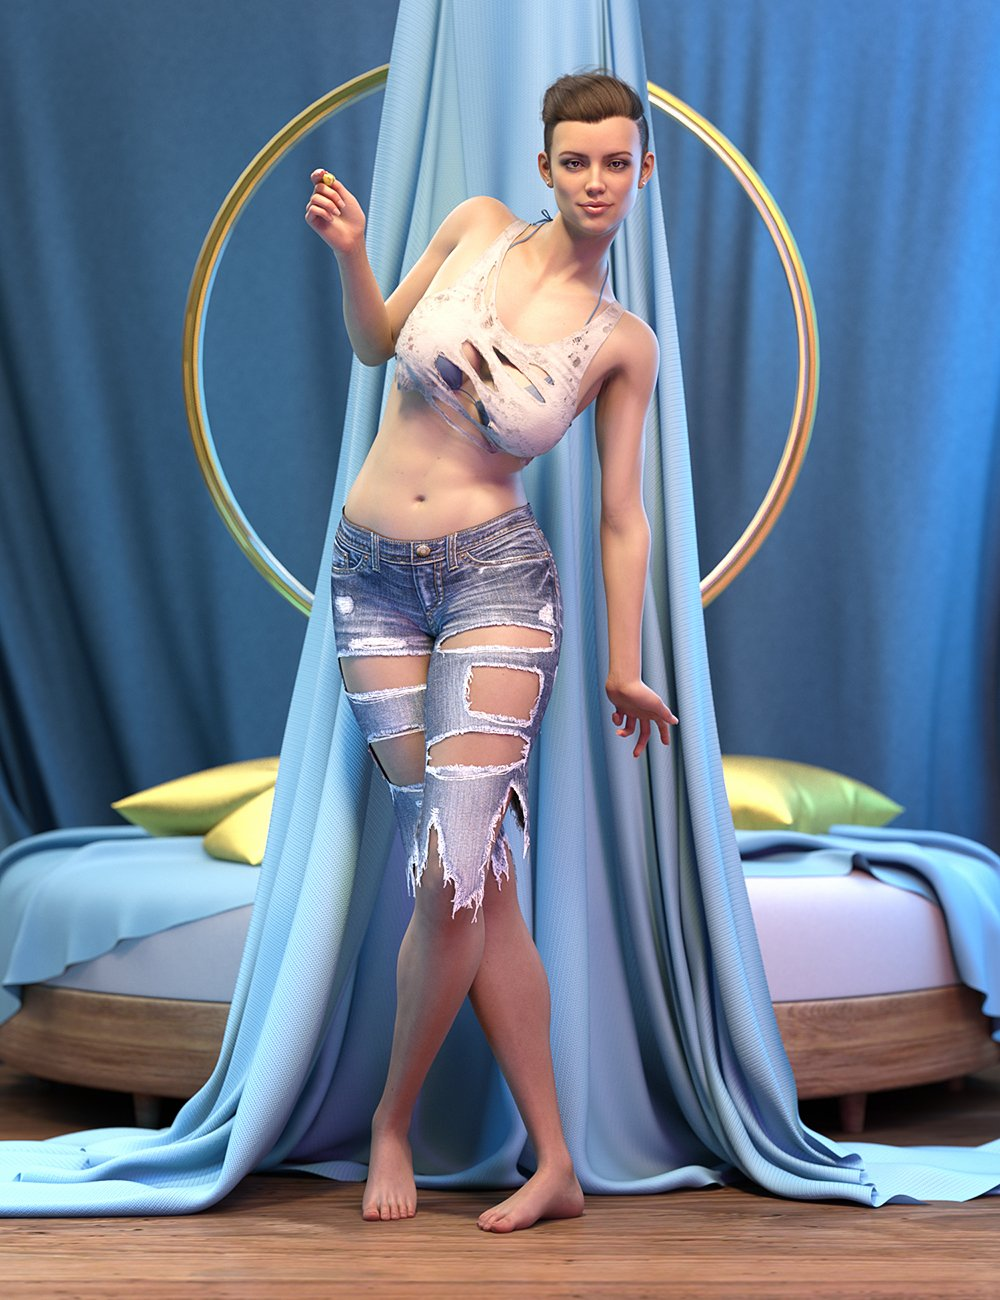 LI Incandescent - PhotoBox for Iray by: Laticis Imagery, 3D Models by Daz 3D